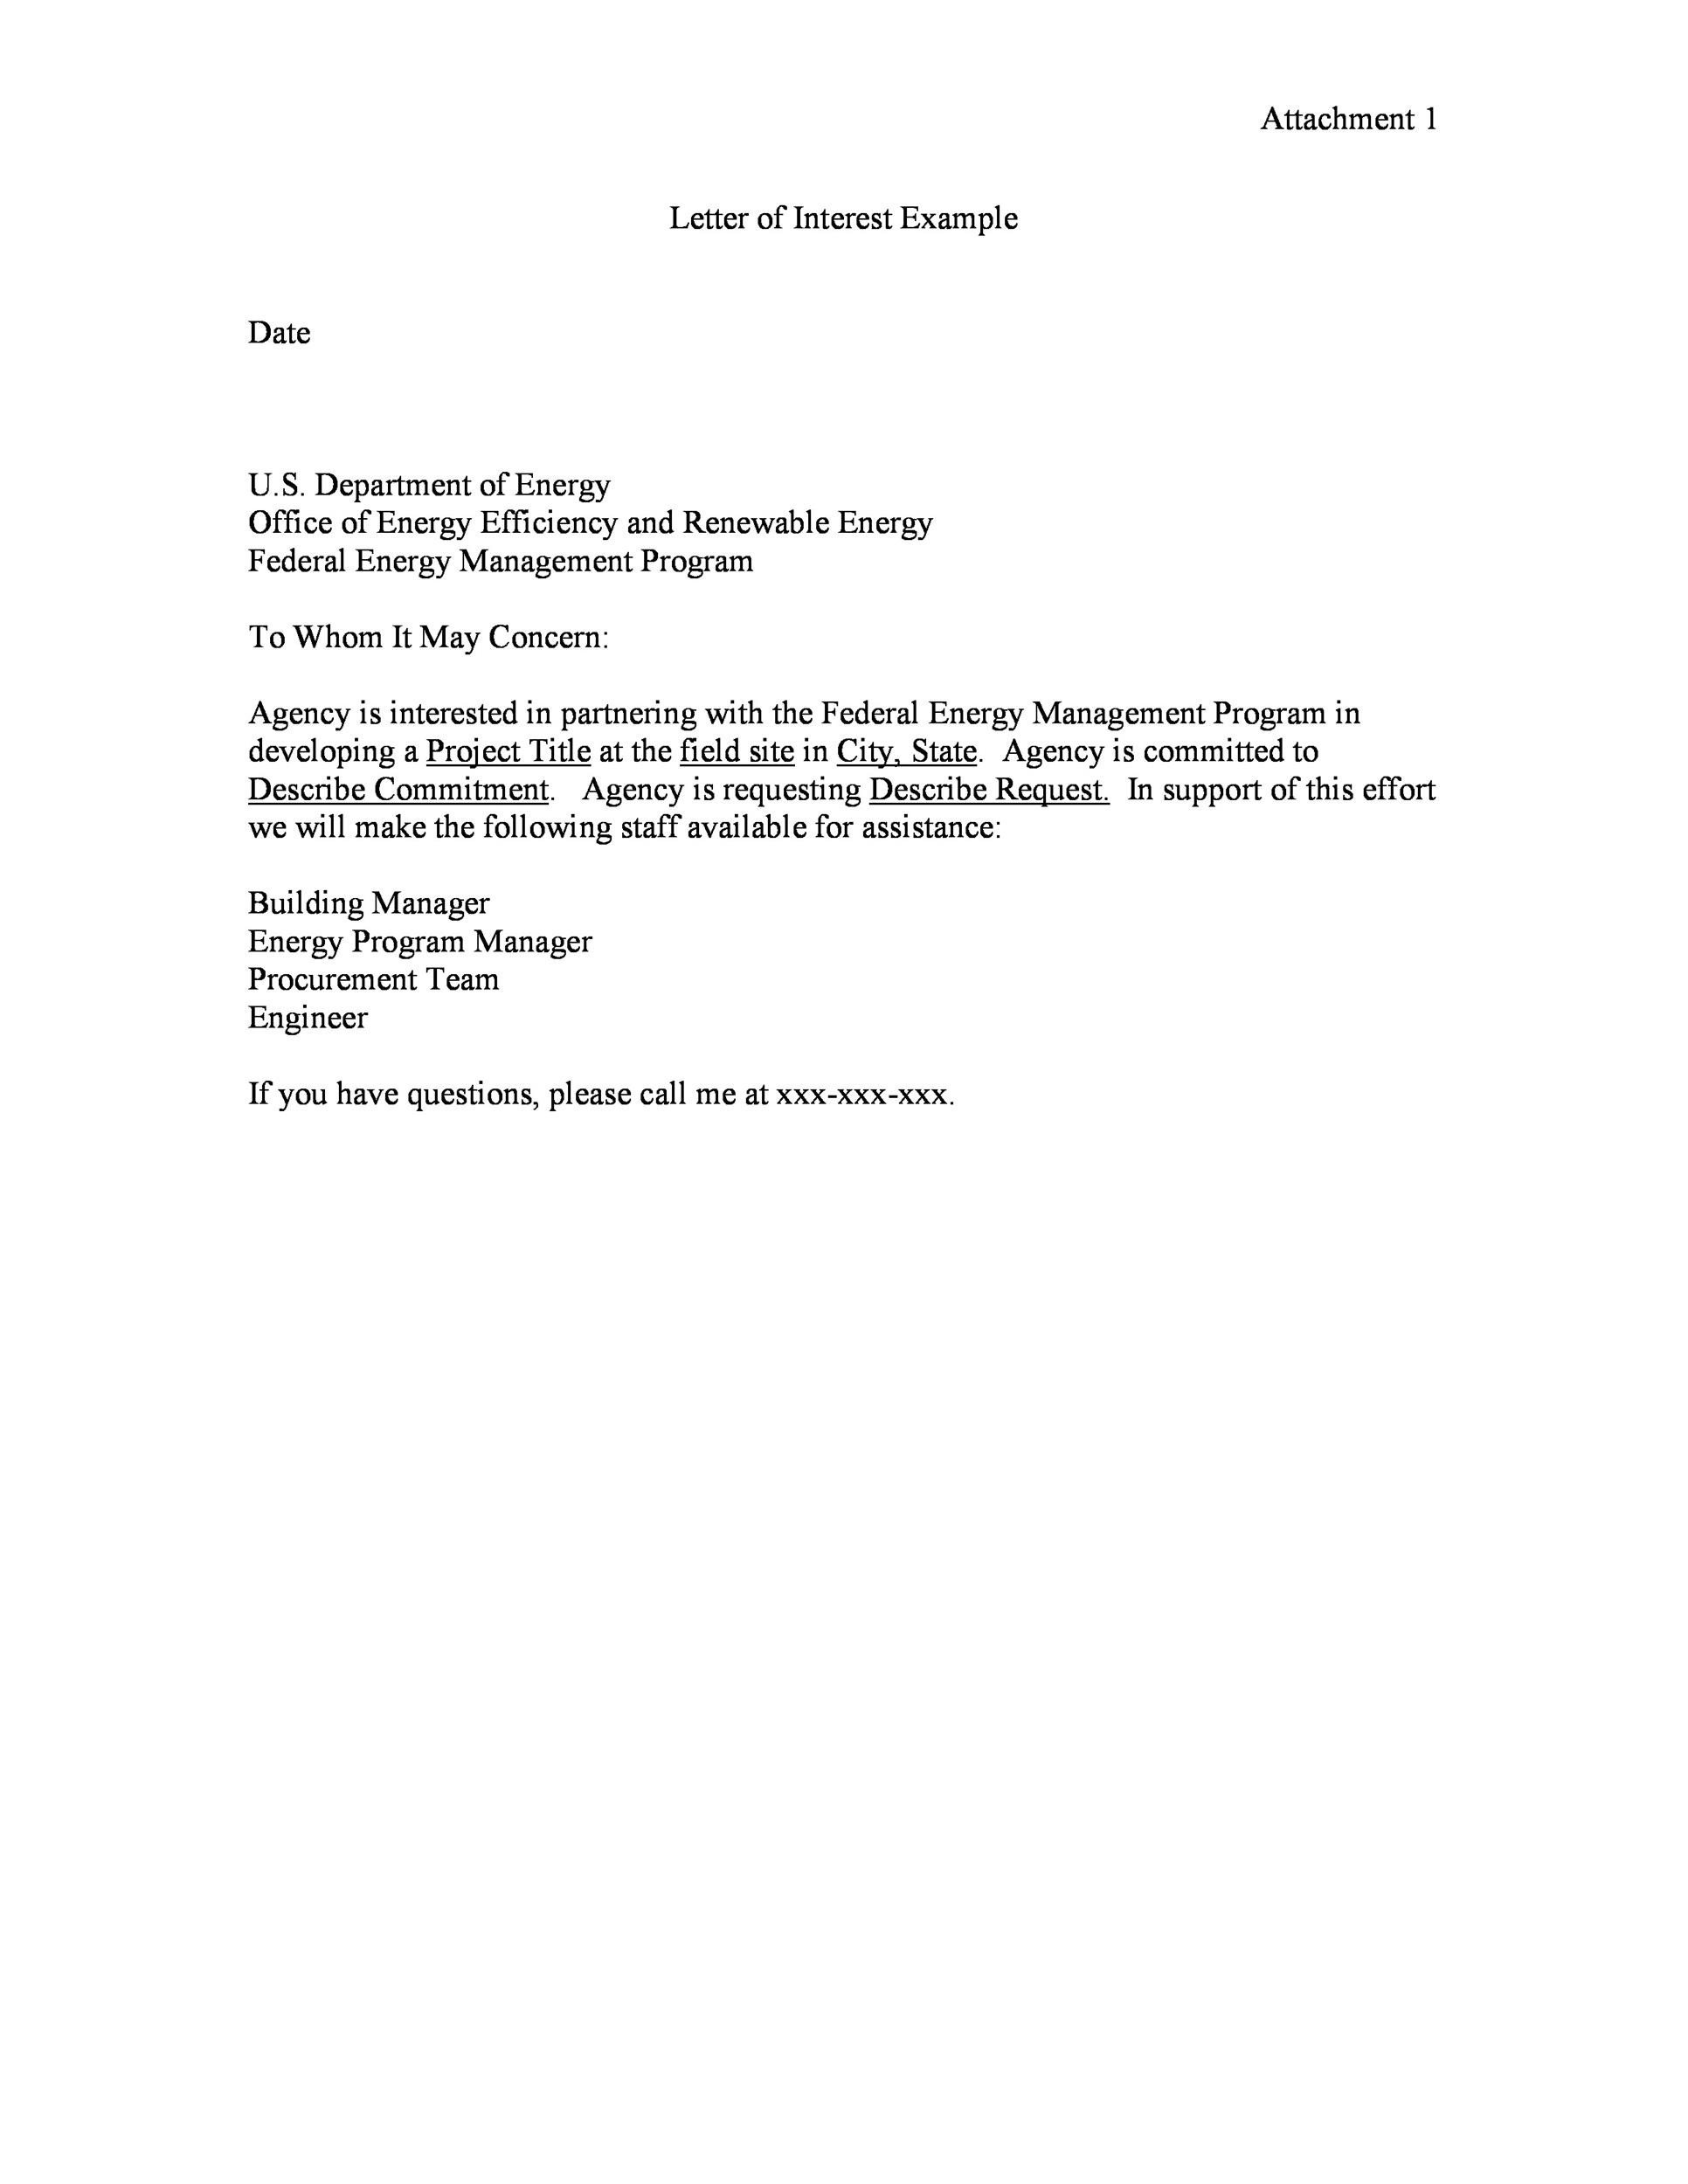 printable letter of interest 09 - Cover Letter Sample For Job Posting